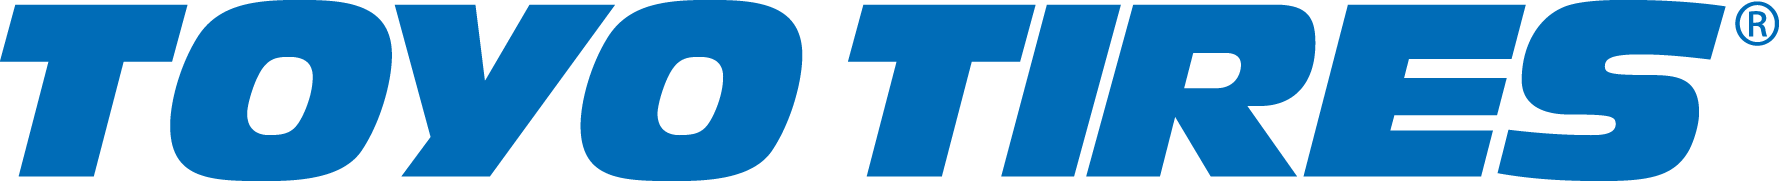 https://www.ustires.org/sites/default/files/Toyo_logo_4c.png